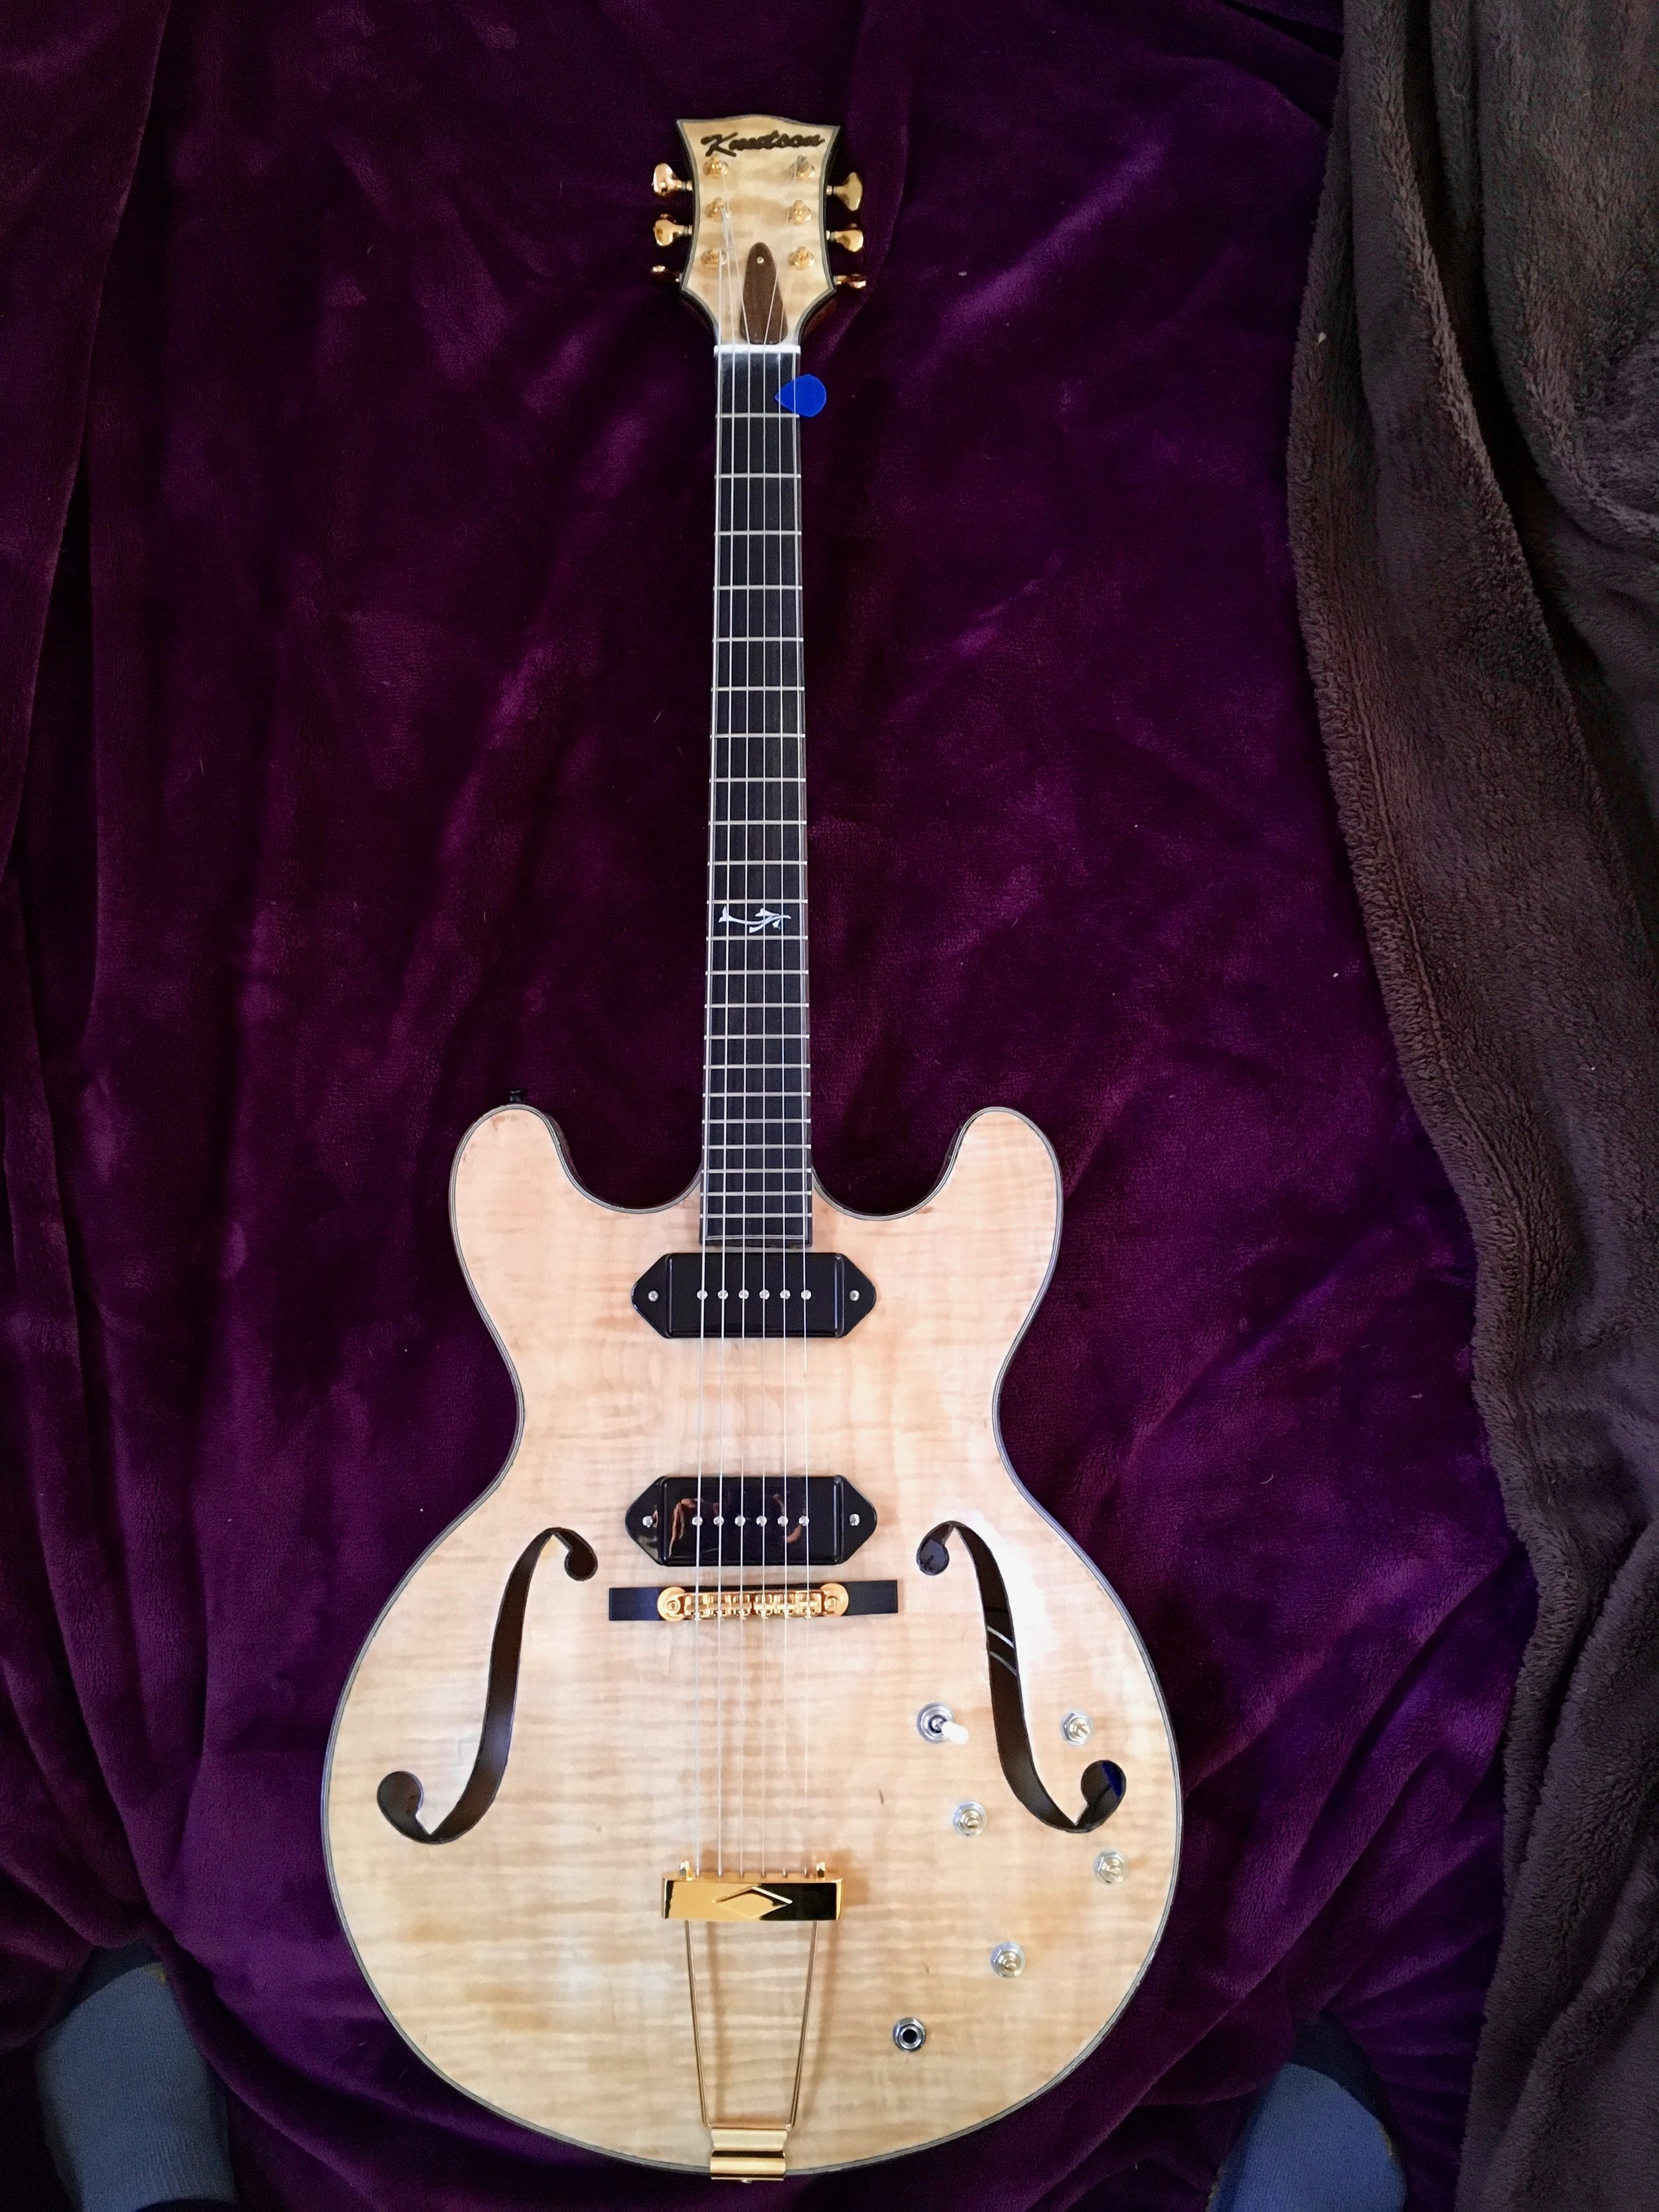 Knutson Hollow Body Thinline with Fralin Noiseless P-90s. Rosewood binding on body and f-holes. Laminate top and back. Mahogany/maple laminate neck. Gotoh Delta tuners. -